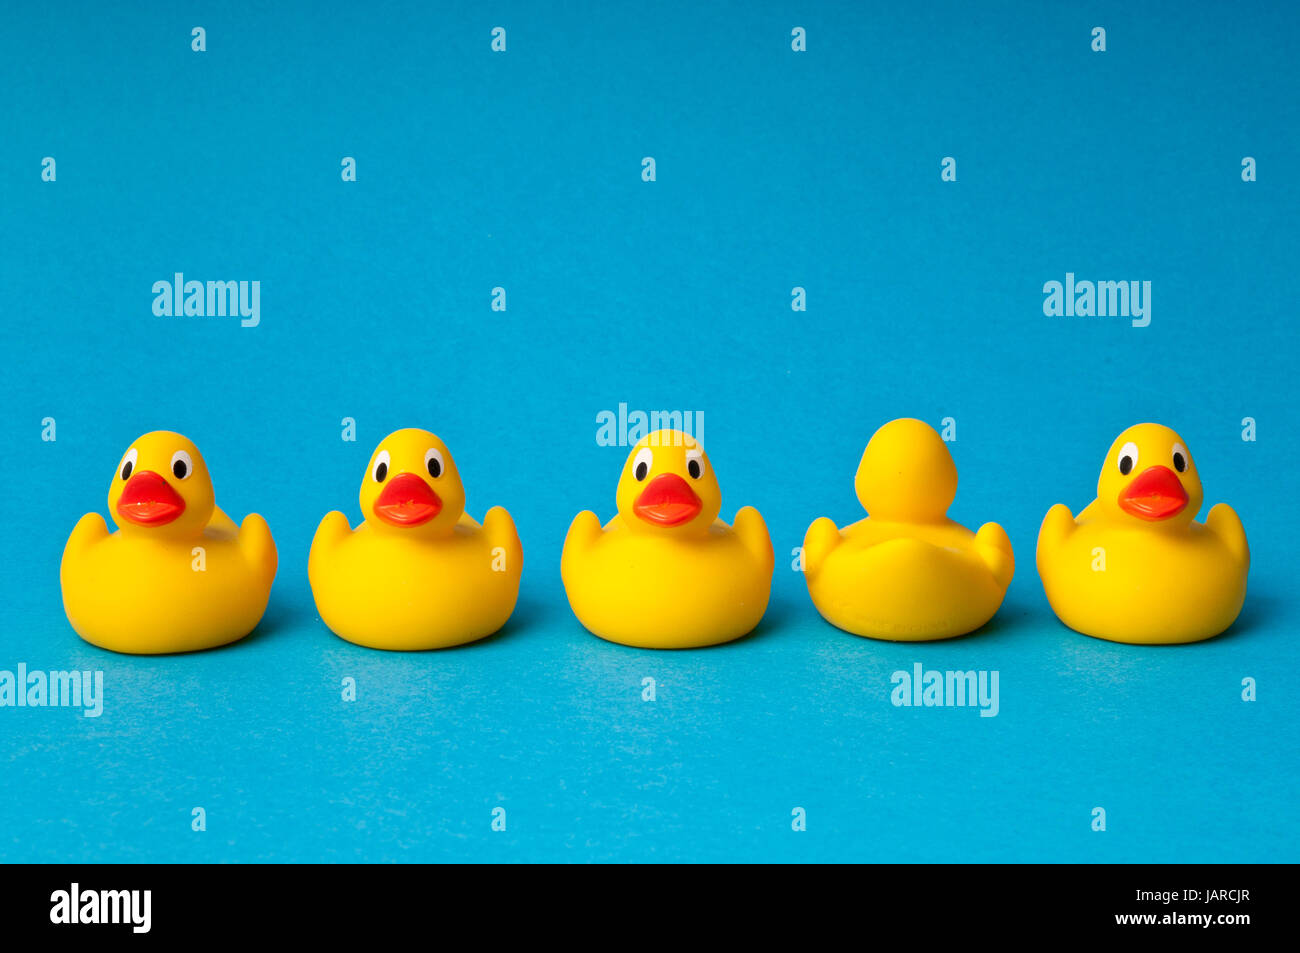 row of yellow rubber toy ducks, one turned way showing the back side - Stock Image